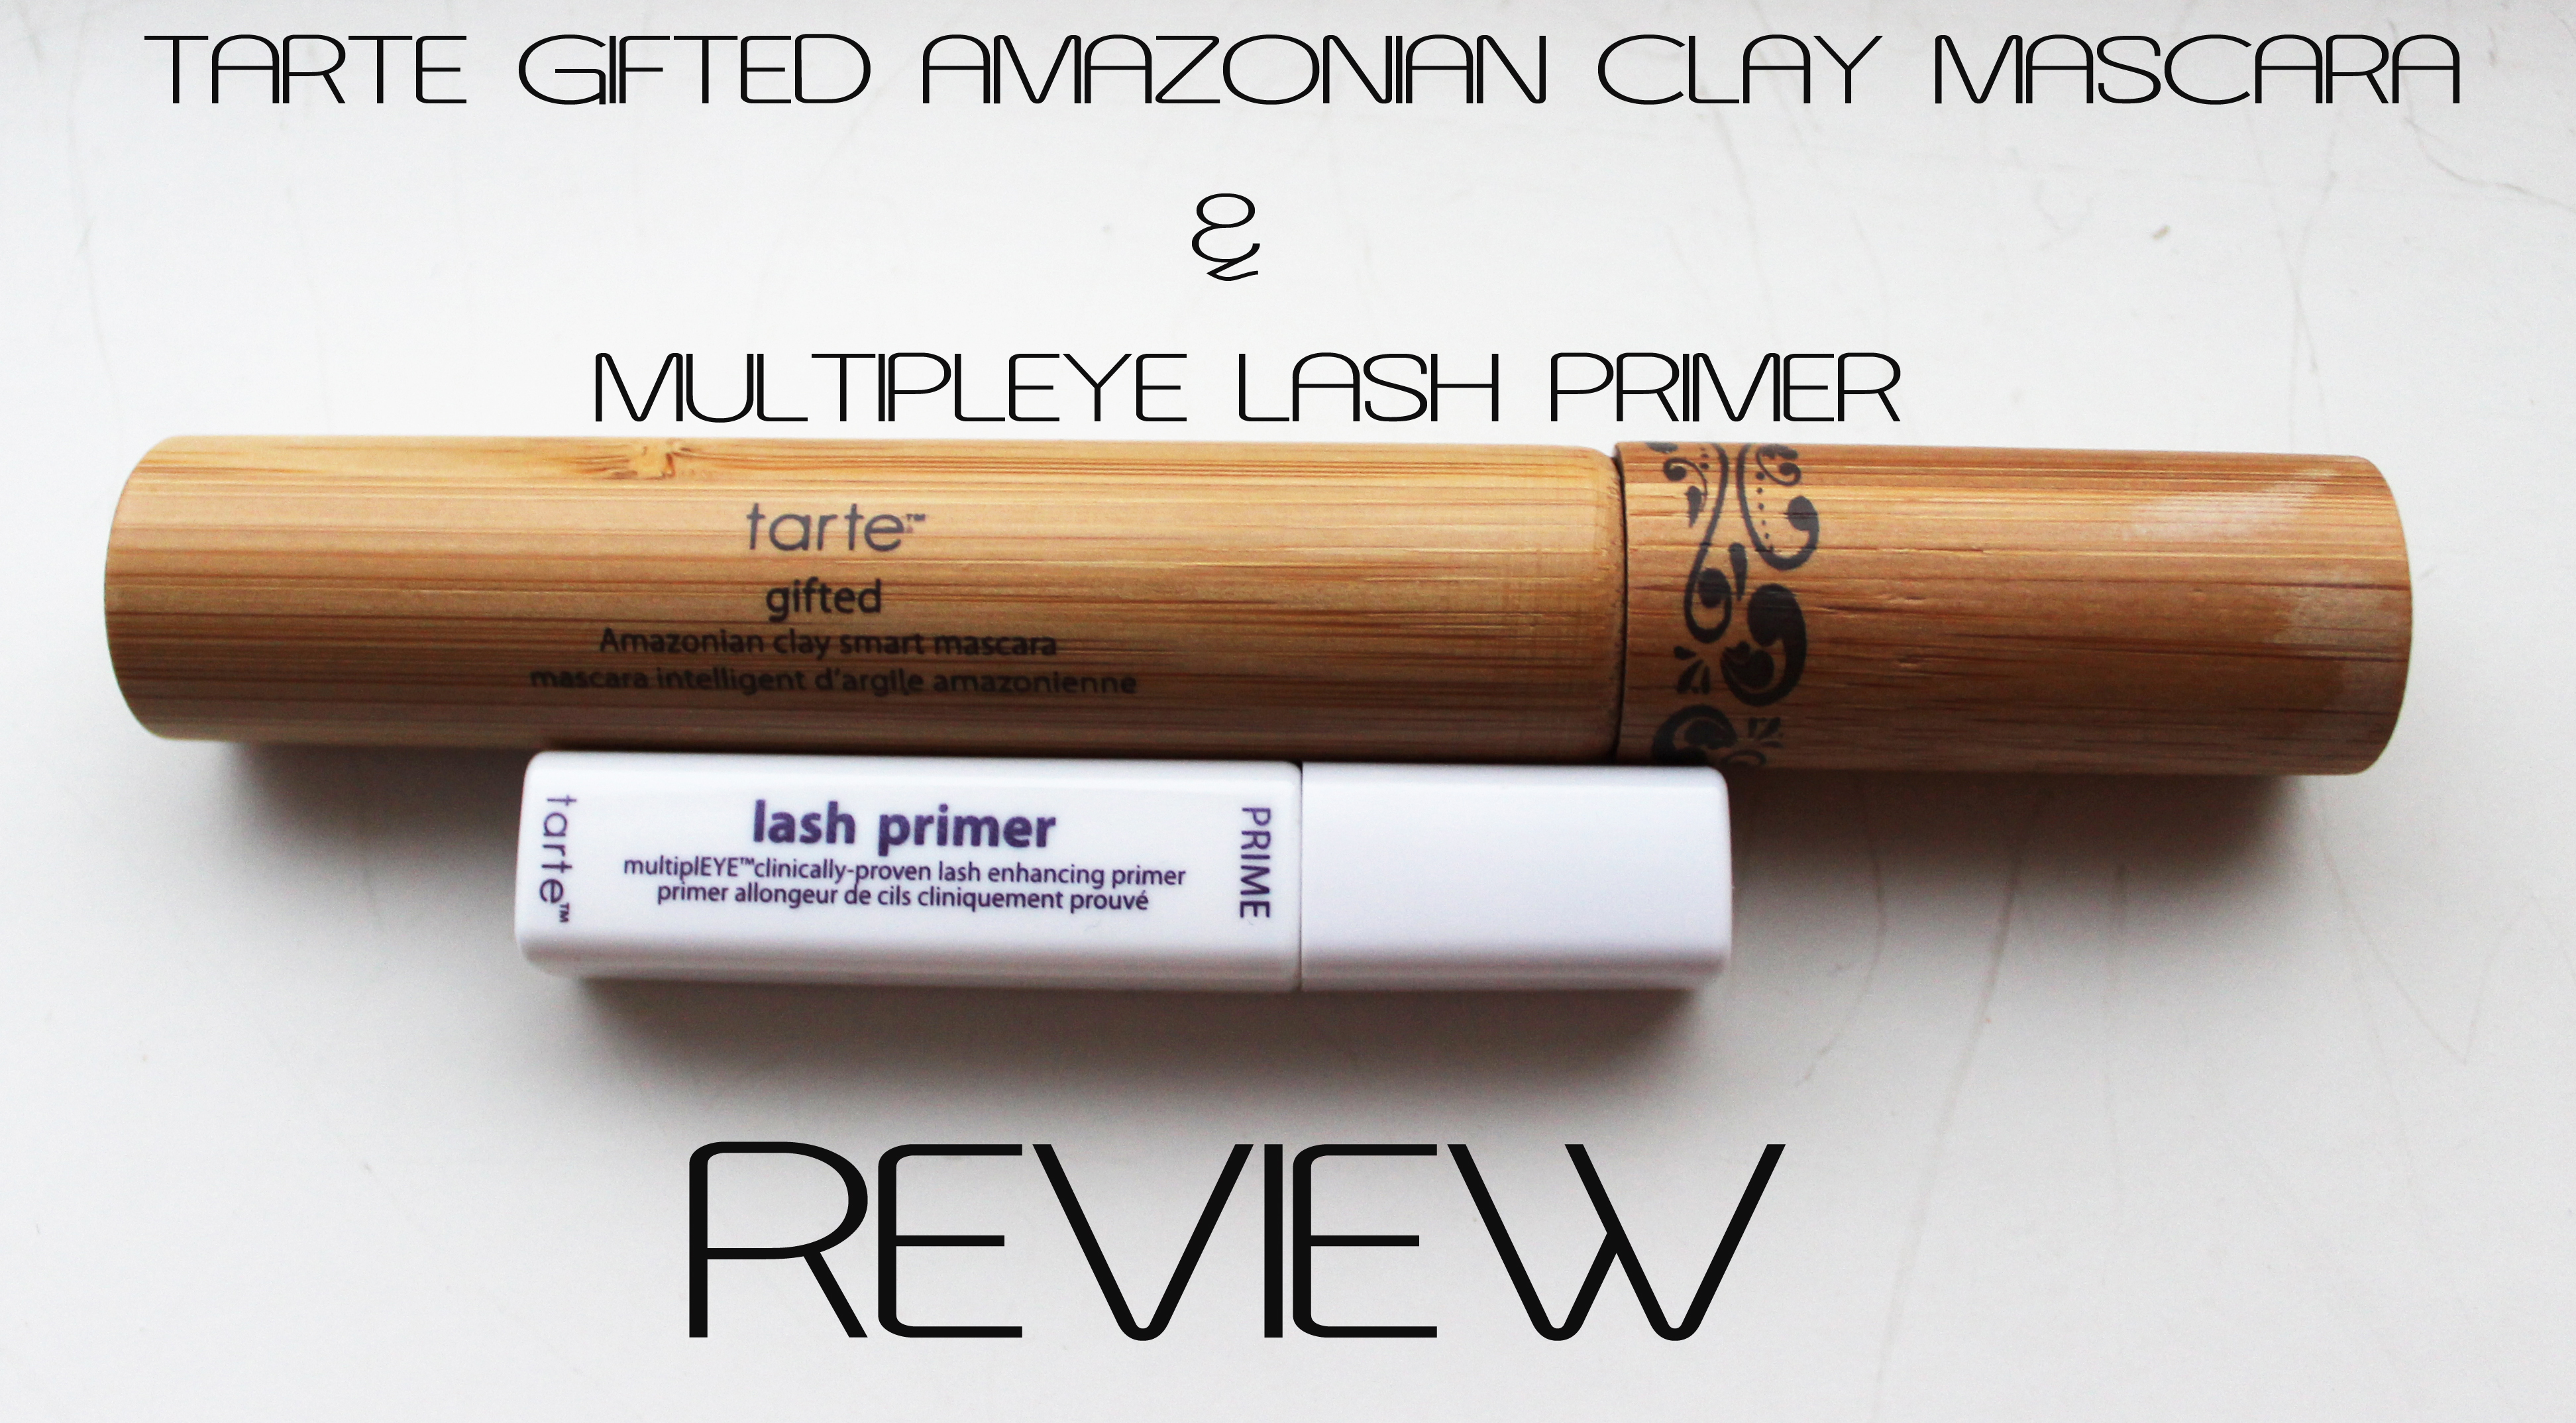 review tarte gifted amazonian clay macara  multipleye lash primer citizens  beauty